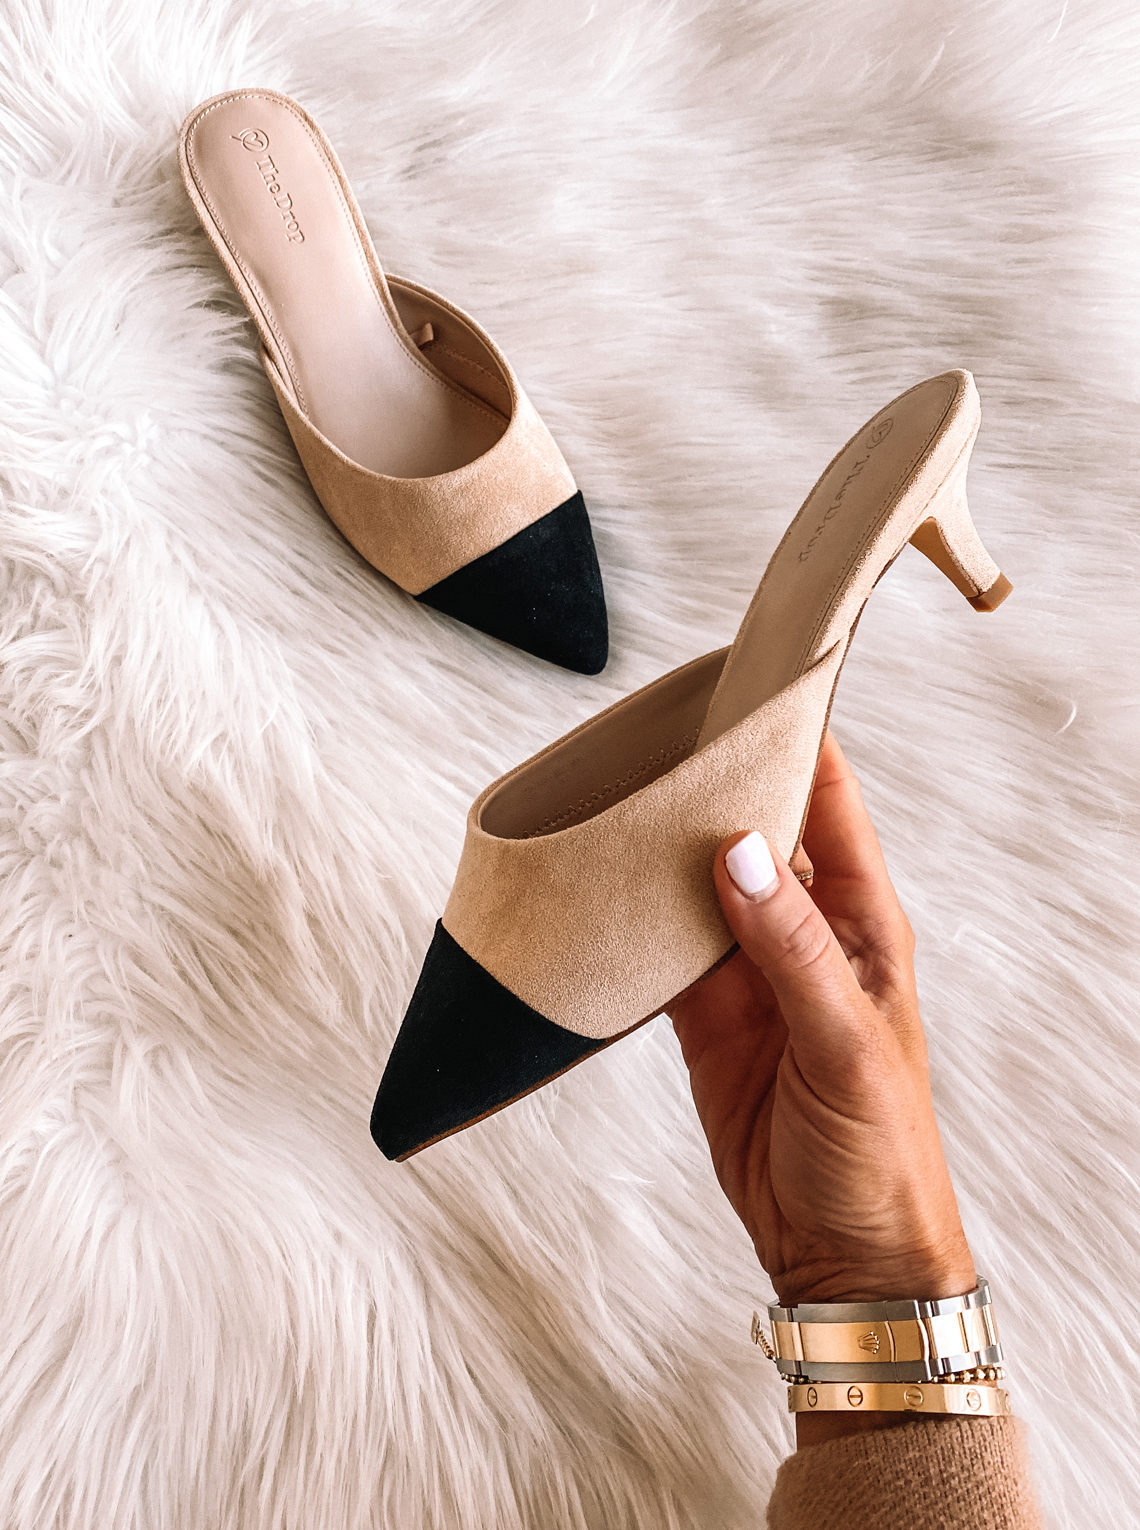 Fashion Jackson Amazon The Drop Two-Tone Heels